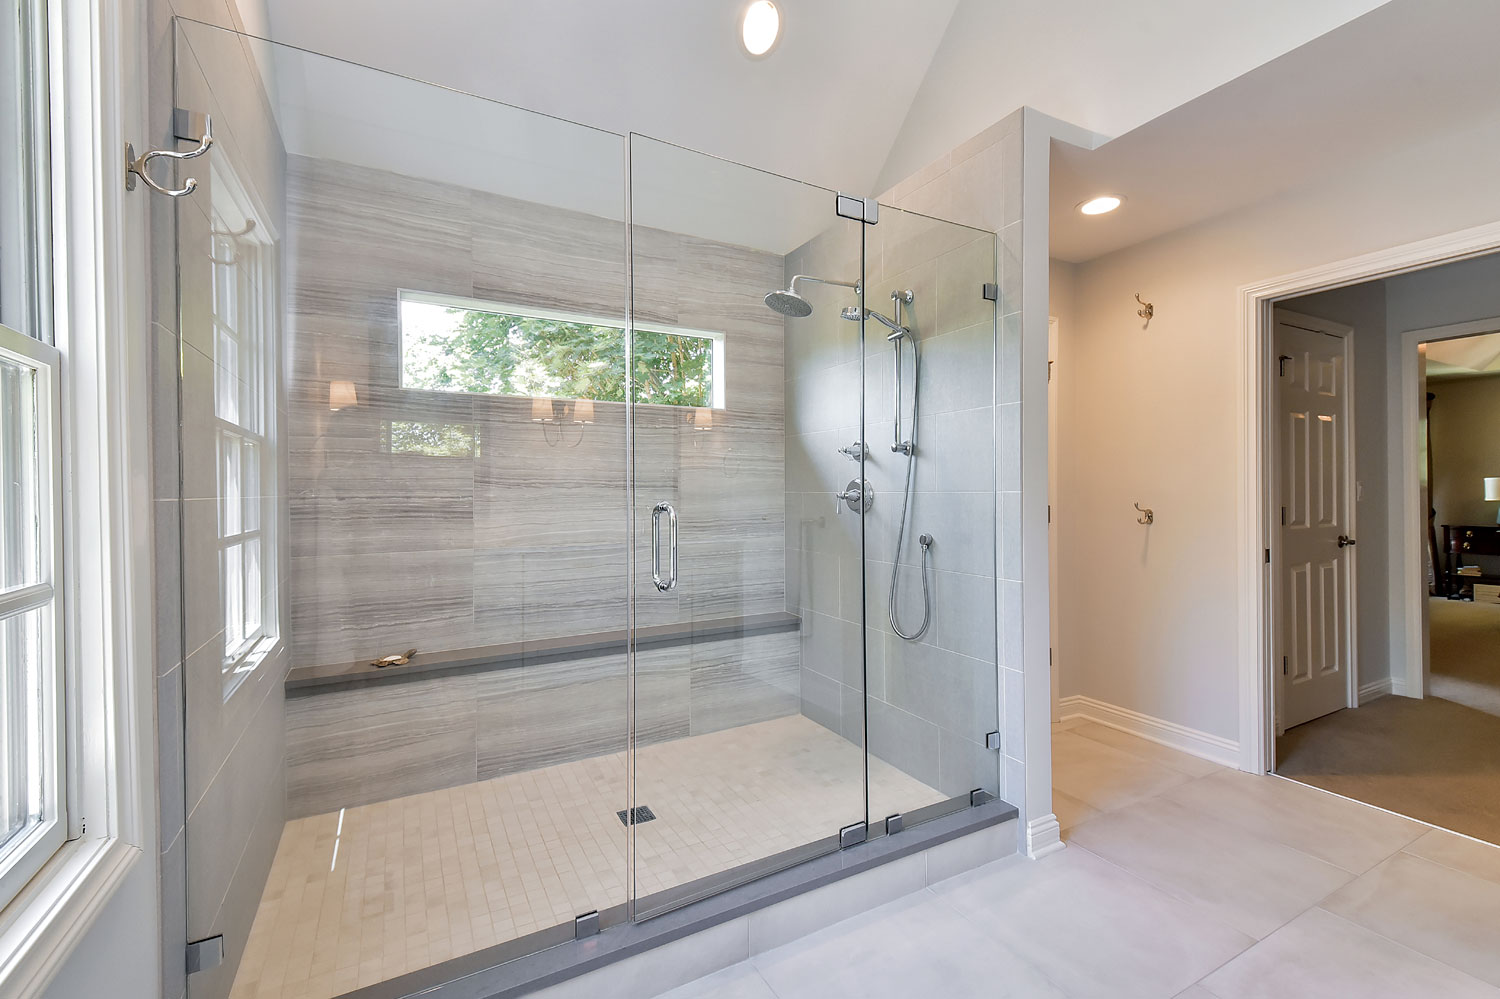 Carl susan 39 s master bathroom remodel pictures home for Bath renovations